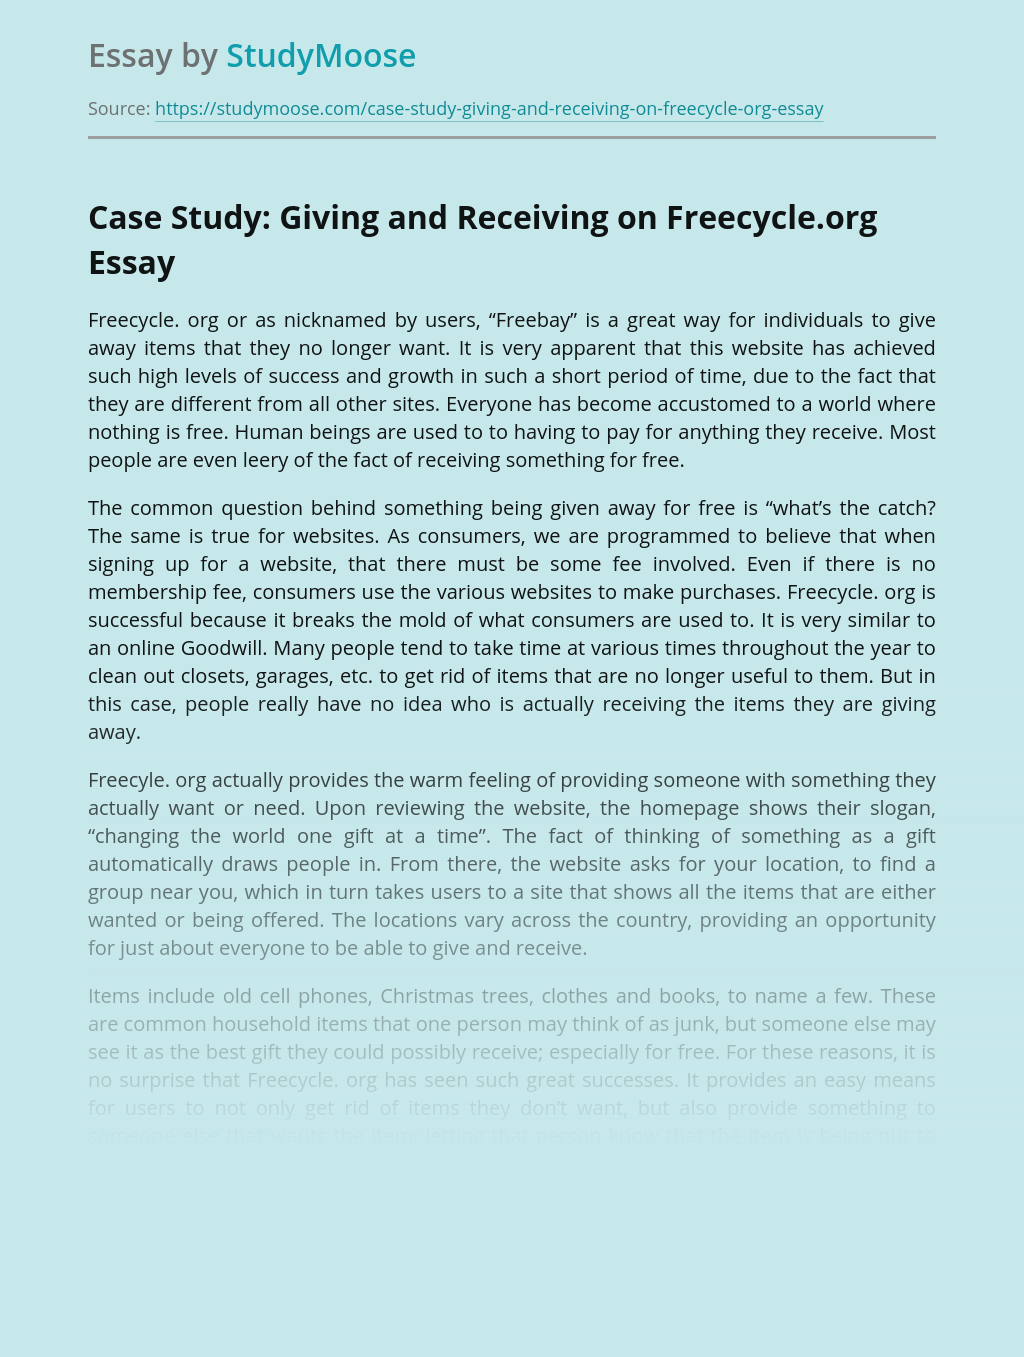 Case Study: Giving and Receiving on Freecycle.org